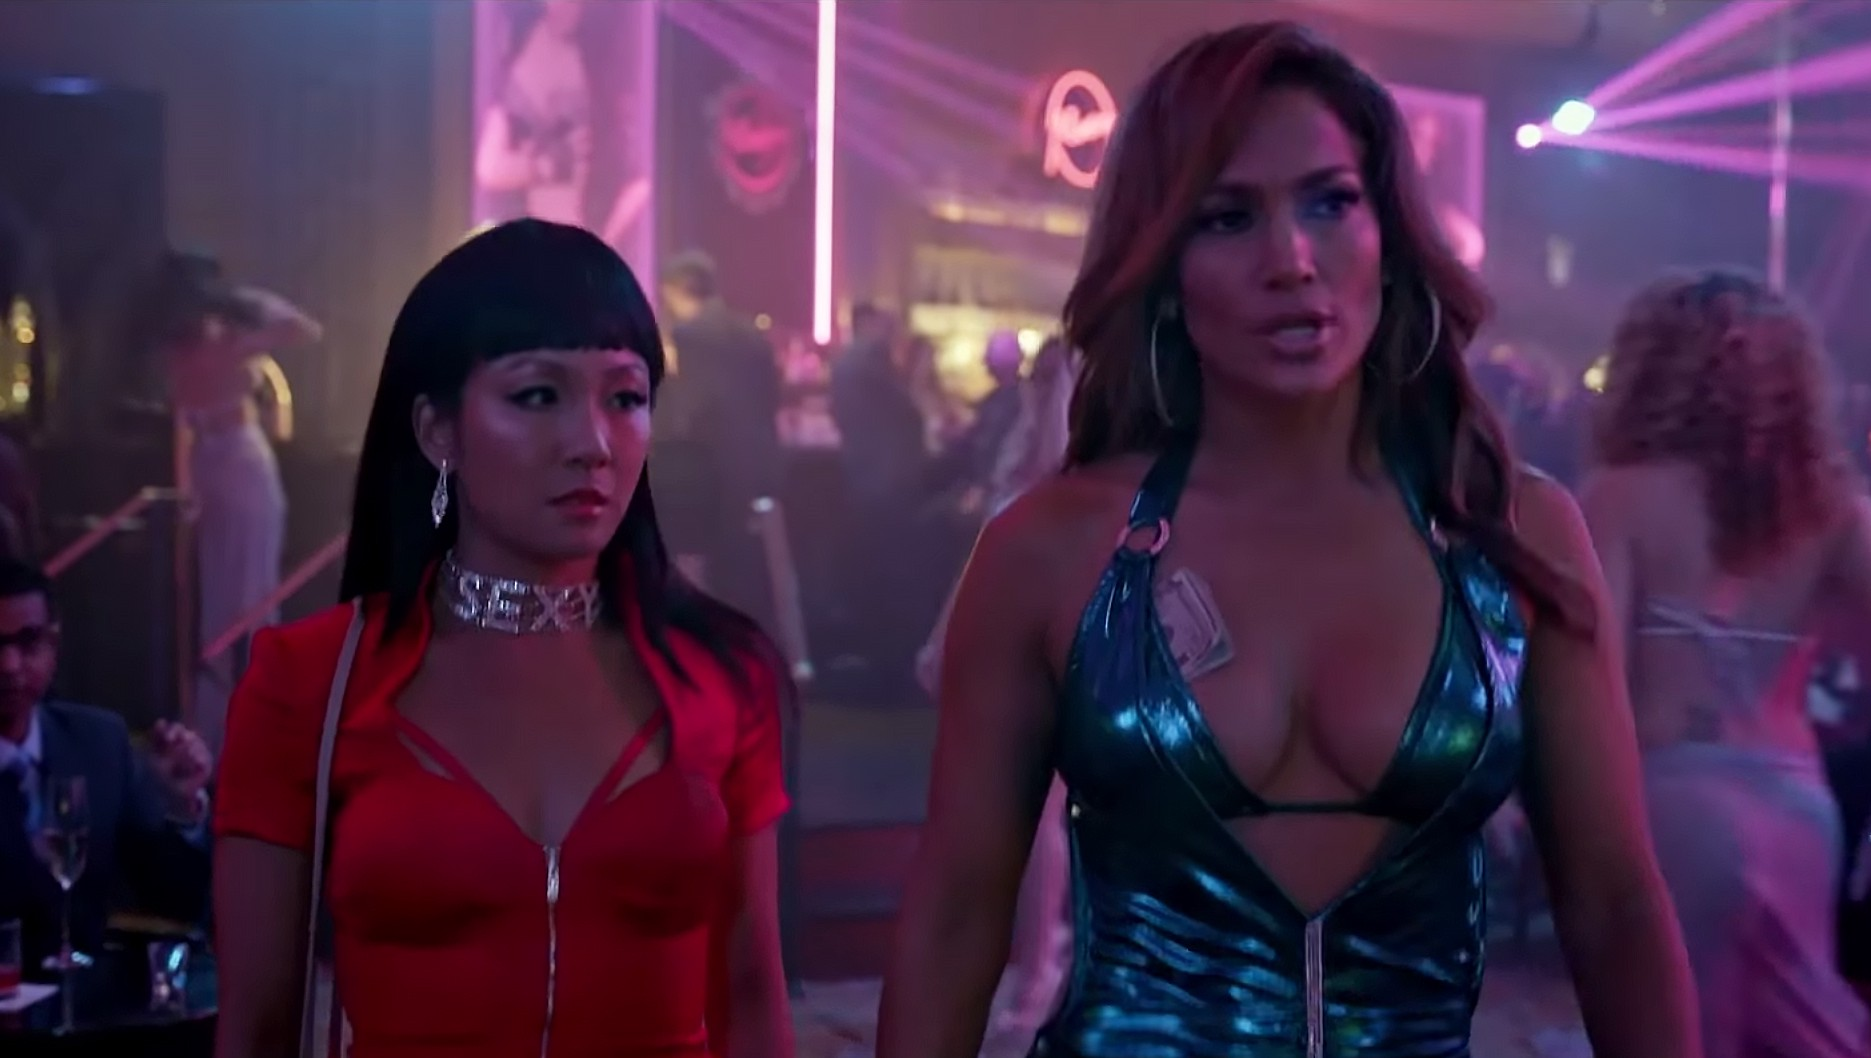 Actresses Constance Wu and Jennifer Lopez in a strip club in the movie Hustlers